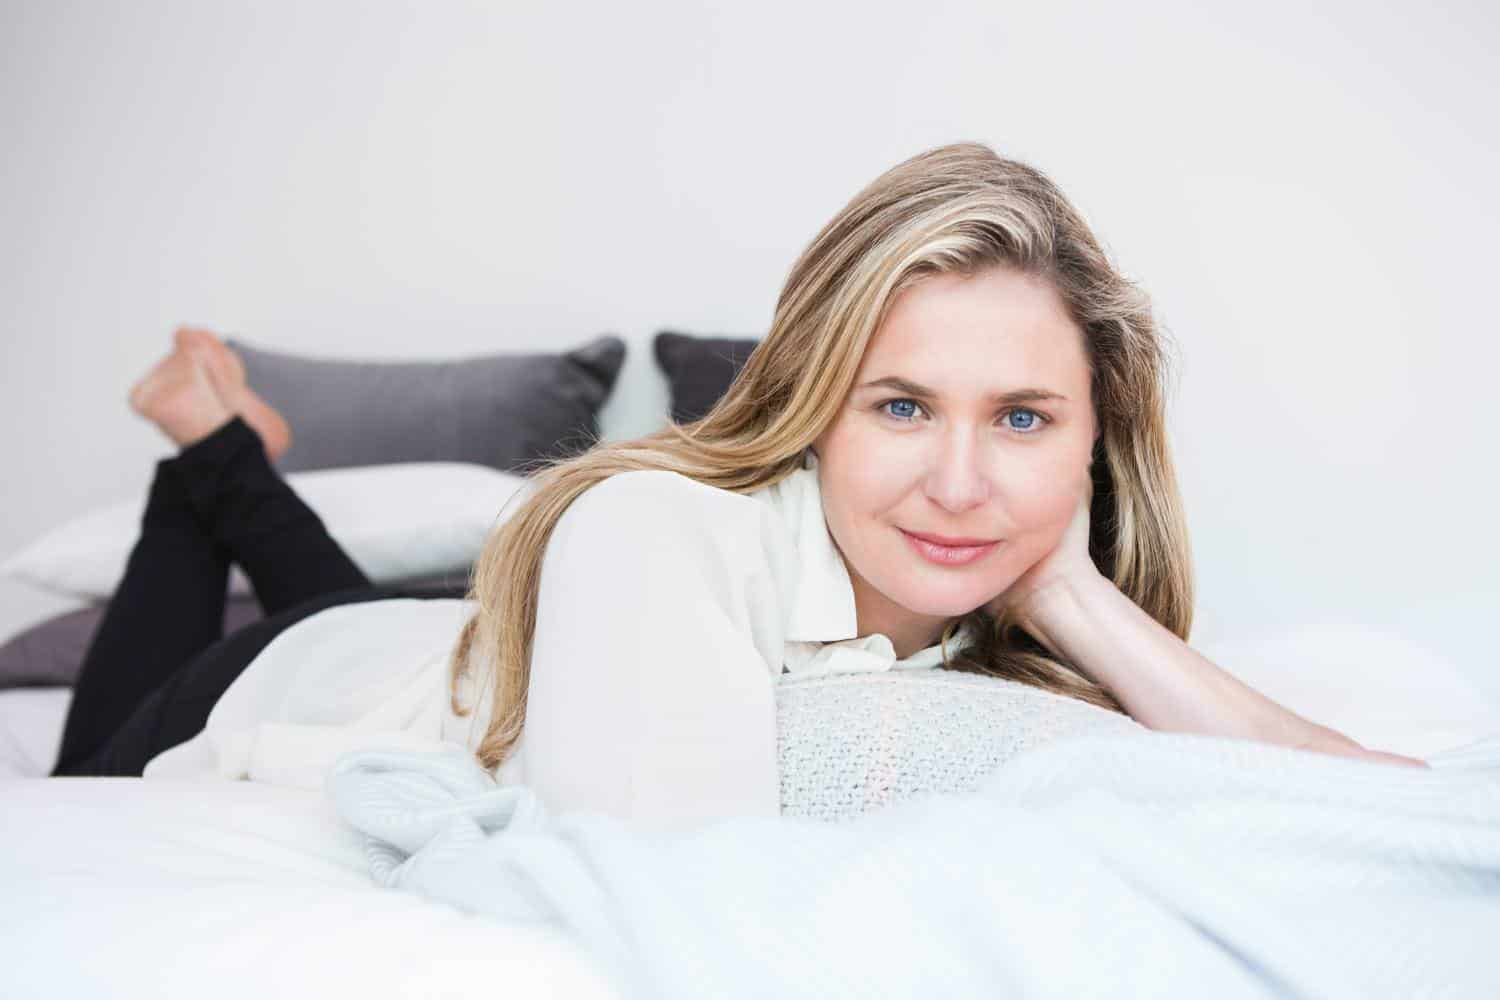 Woman laying on bed smiling at camera